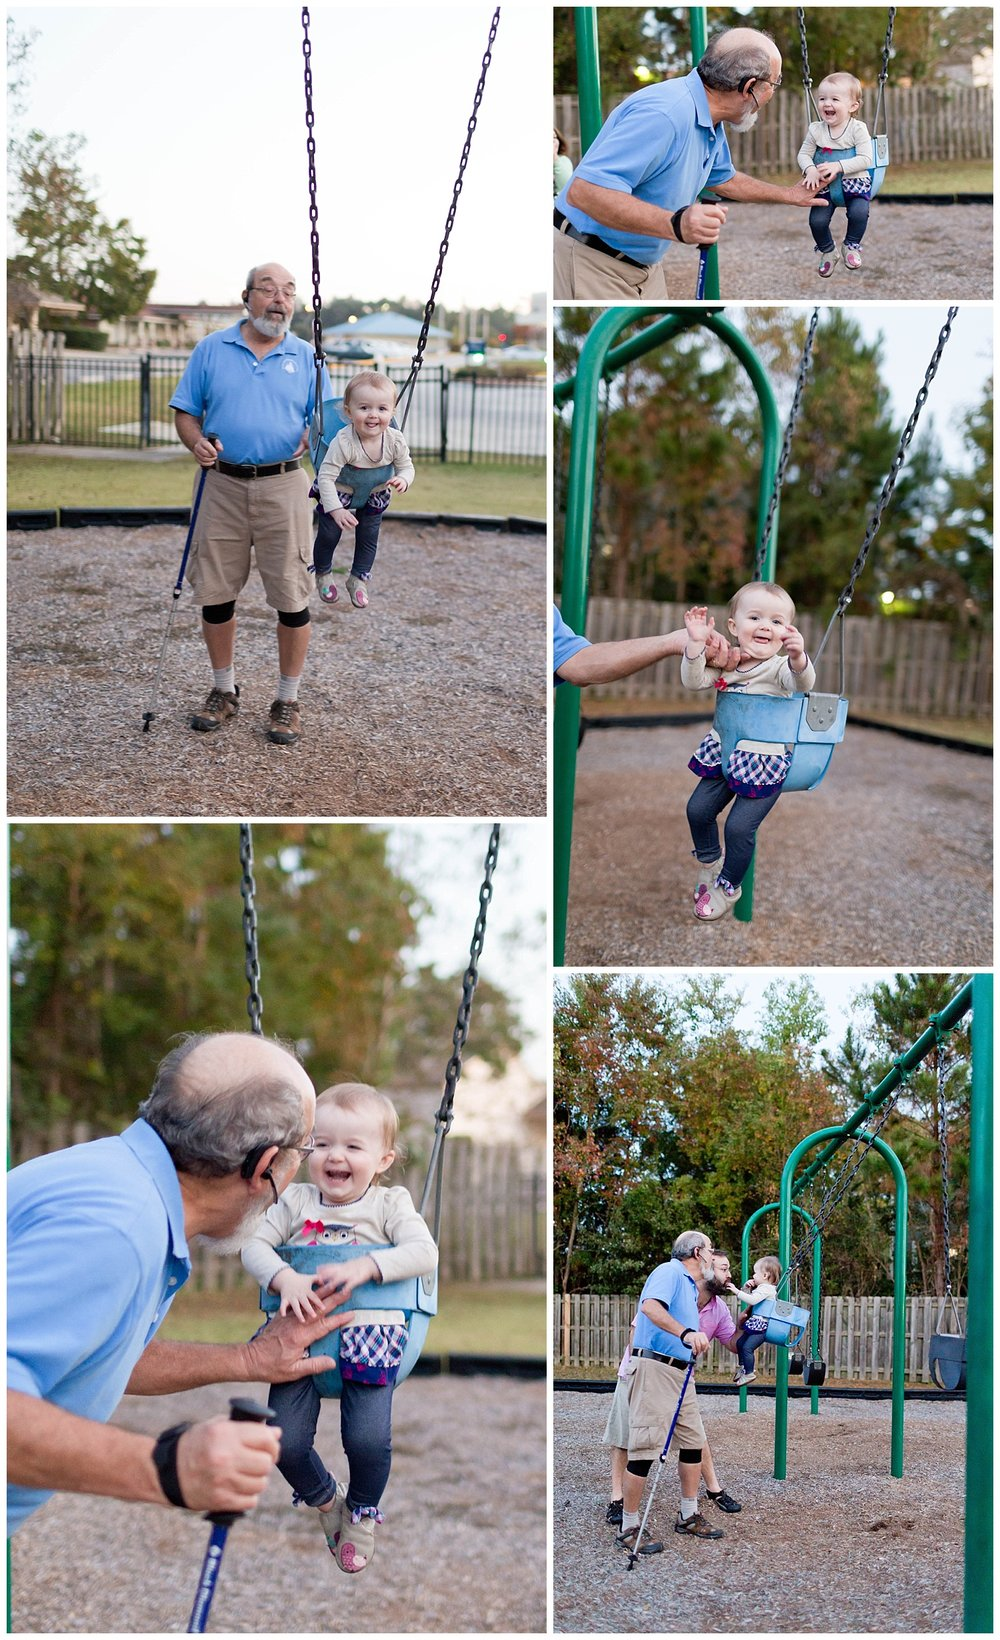 toddler girl with dad and grandpa on swings at park (Fort Bayou, Ocean Springs)